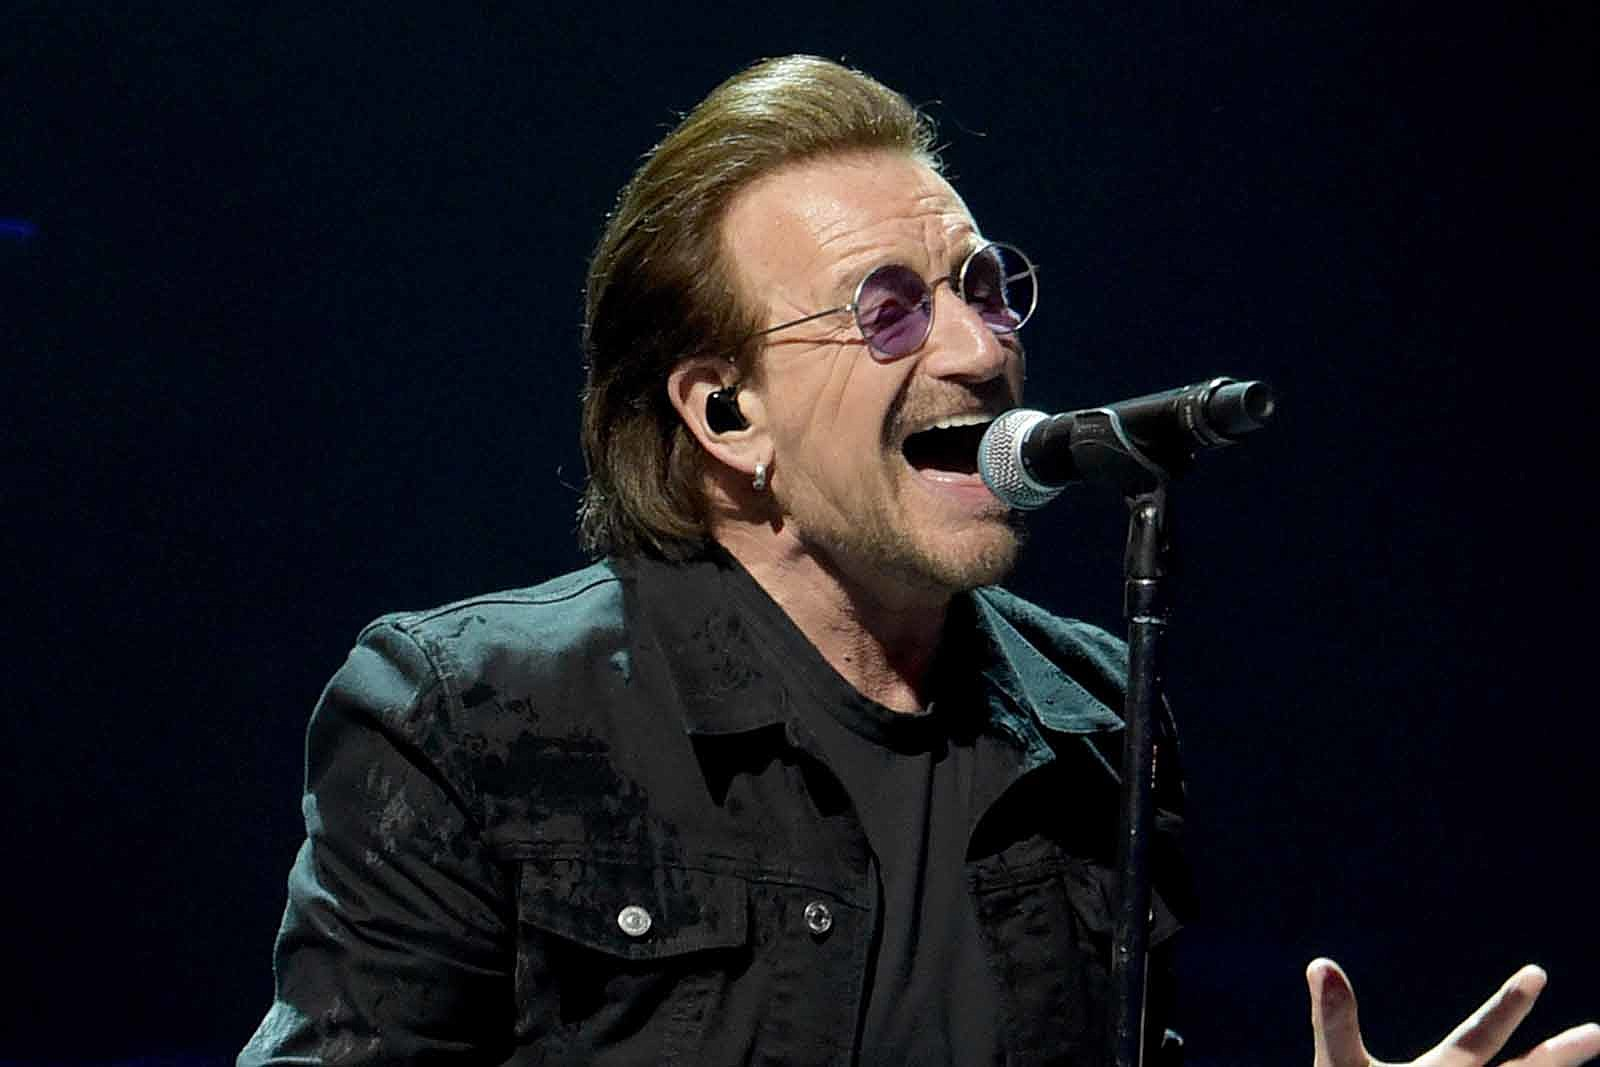 'We're Going Away Now': U2 Ends Tour on Cryptic Note